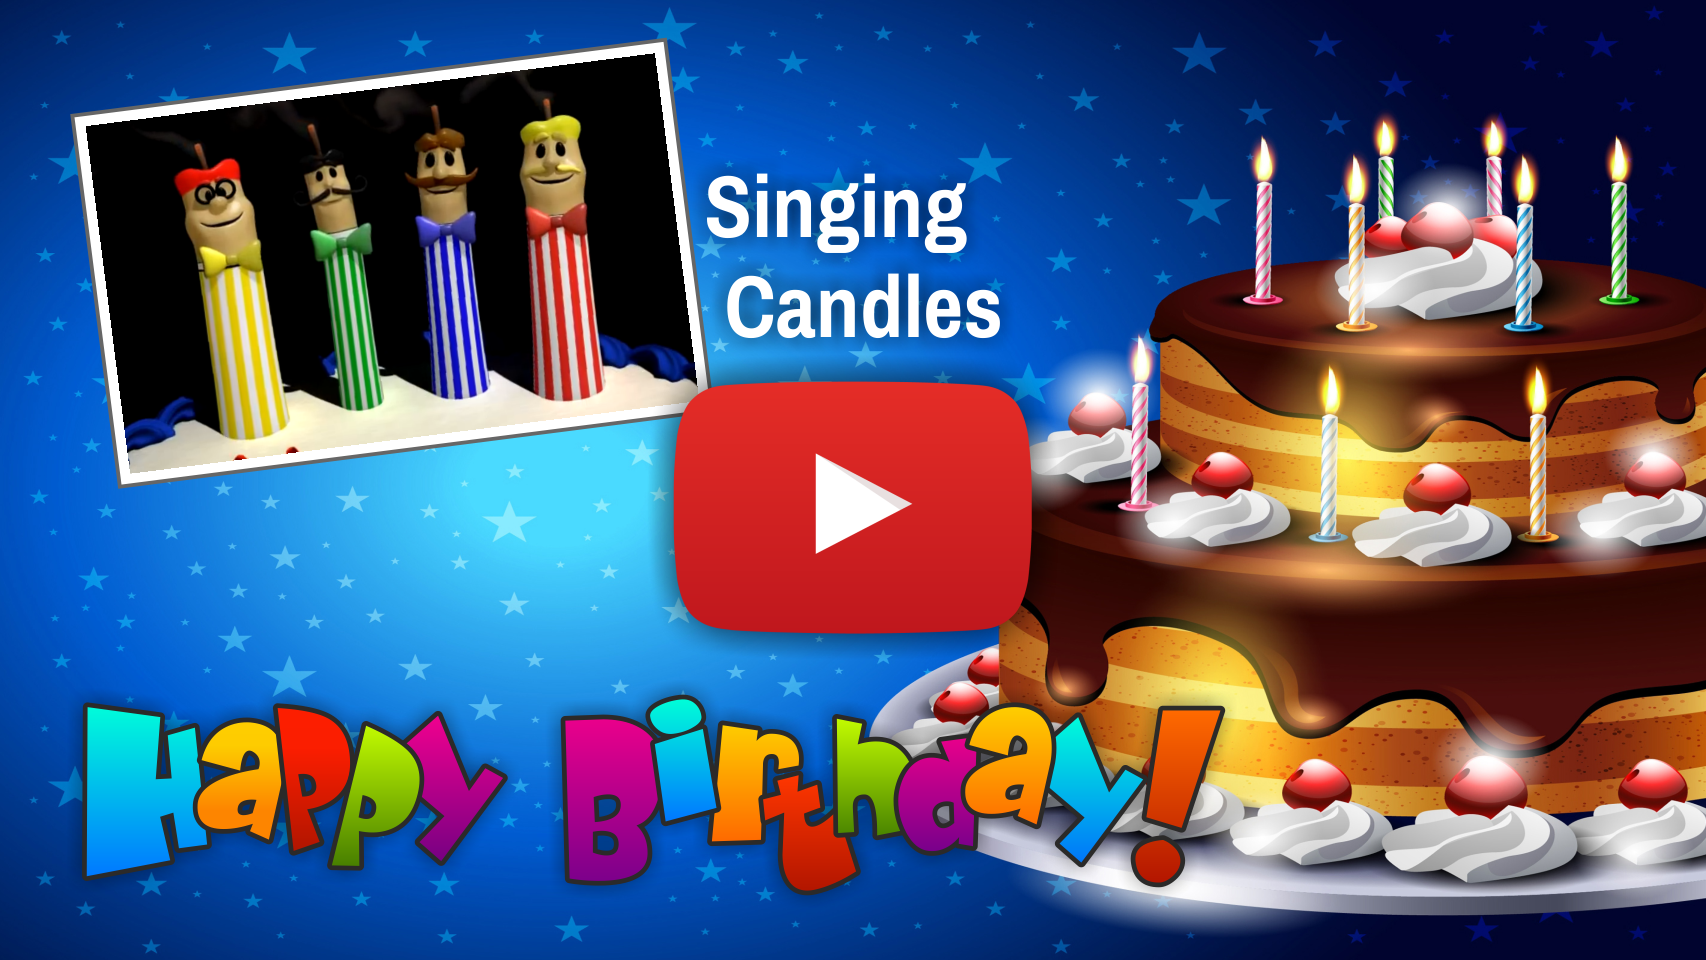 Cake Candles Singing The Happy Birthday Song Video